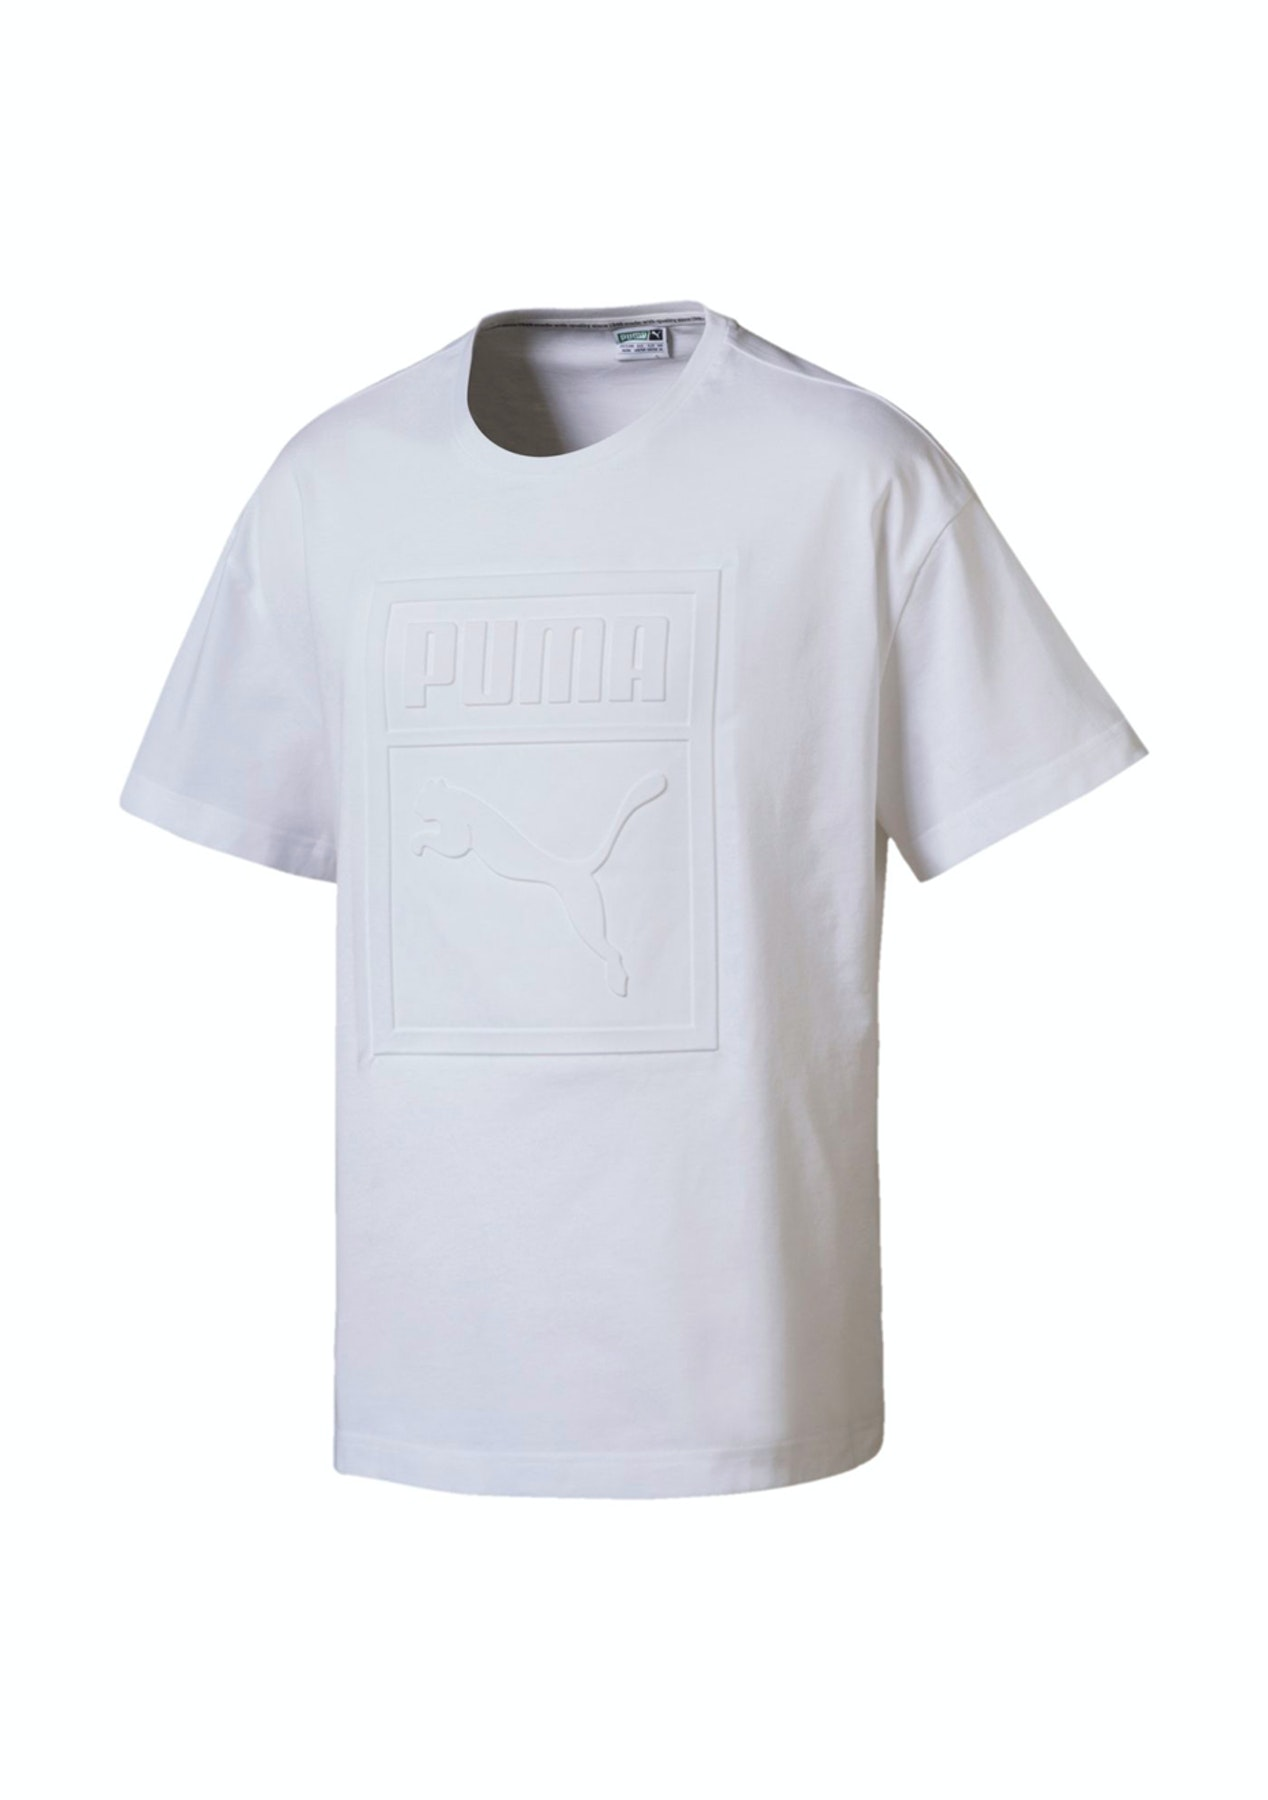 5c808c1dee6 Puma Mens - Archive Embossed Print Tee - White - PUMA Mens up to 63% Off -  Onceit